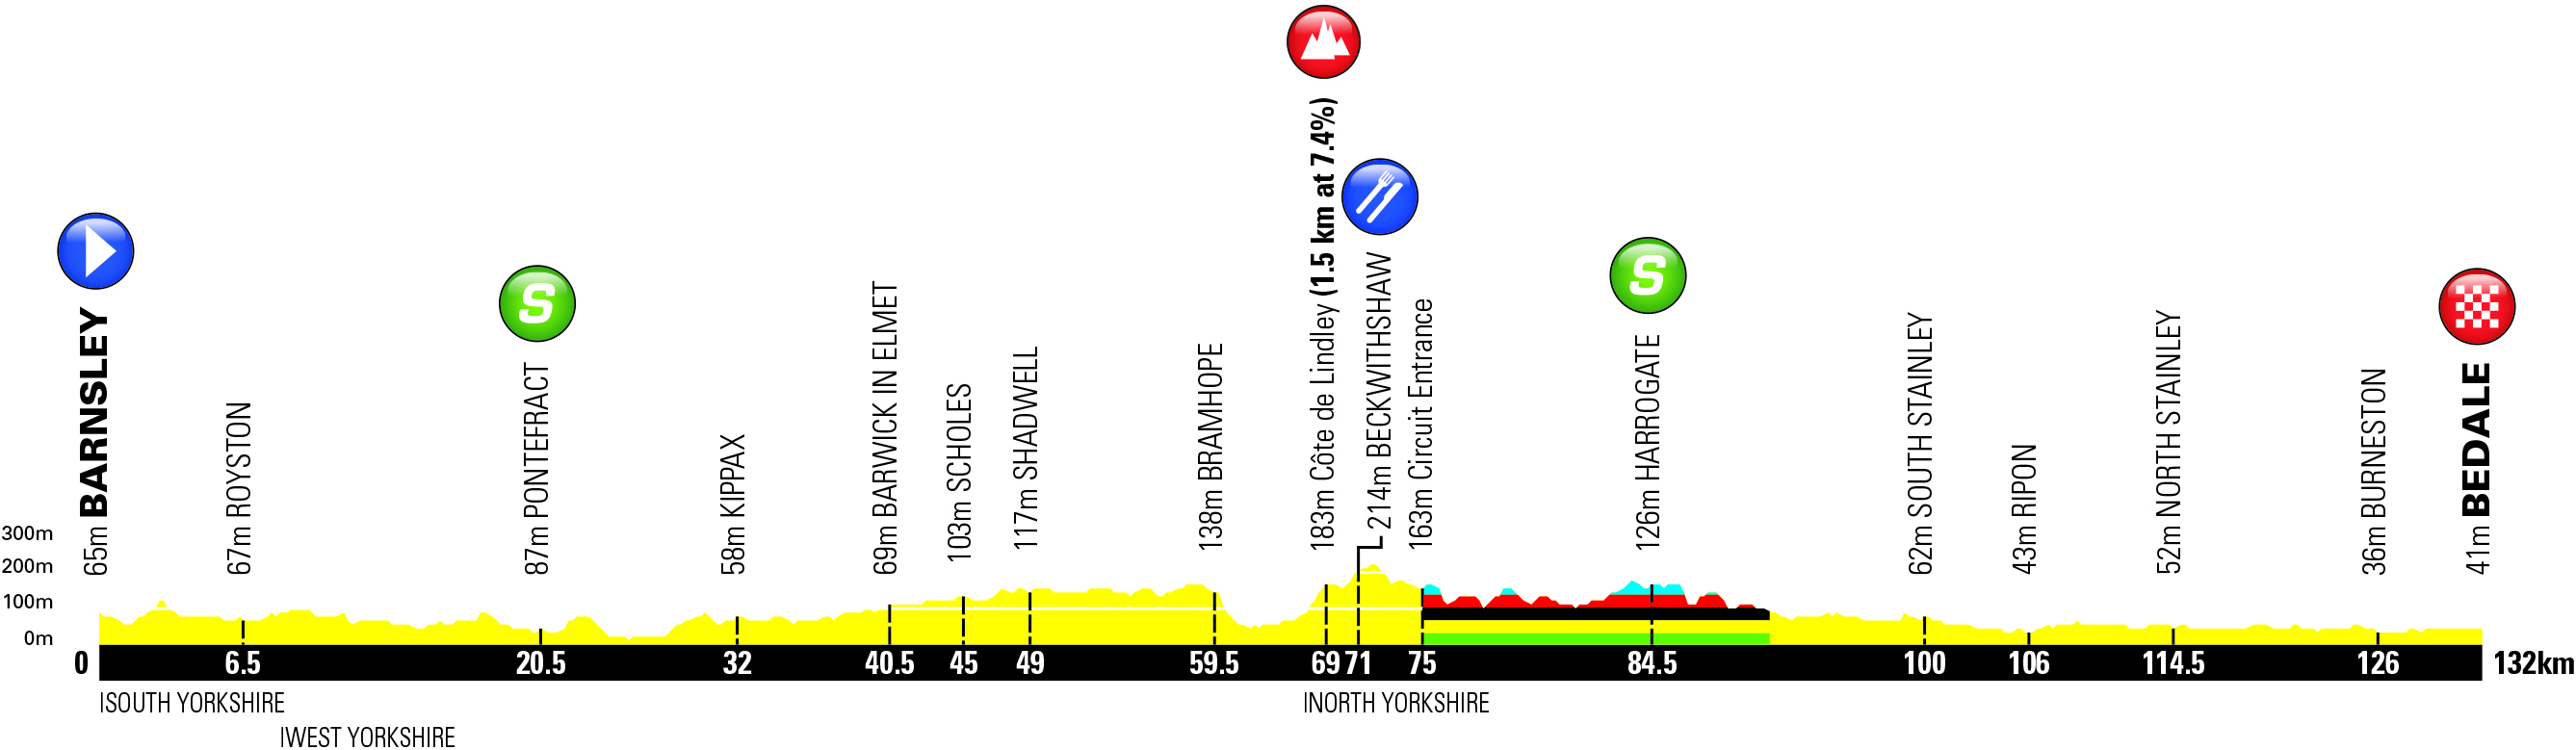 tdy19_stage2.jpg